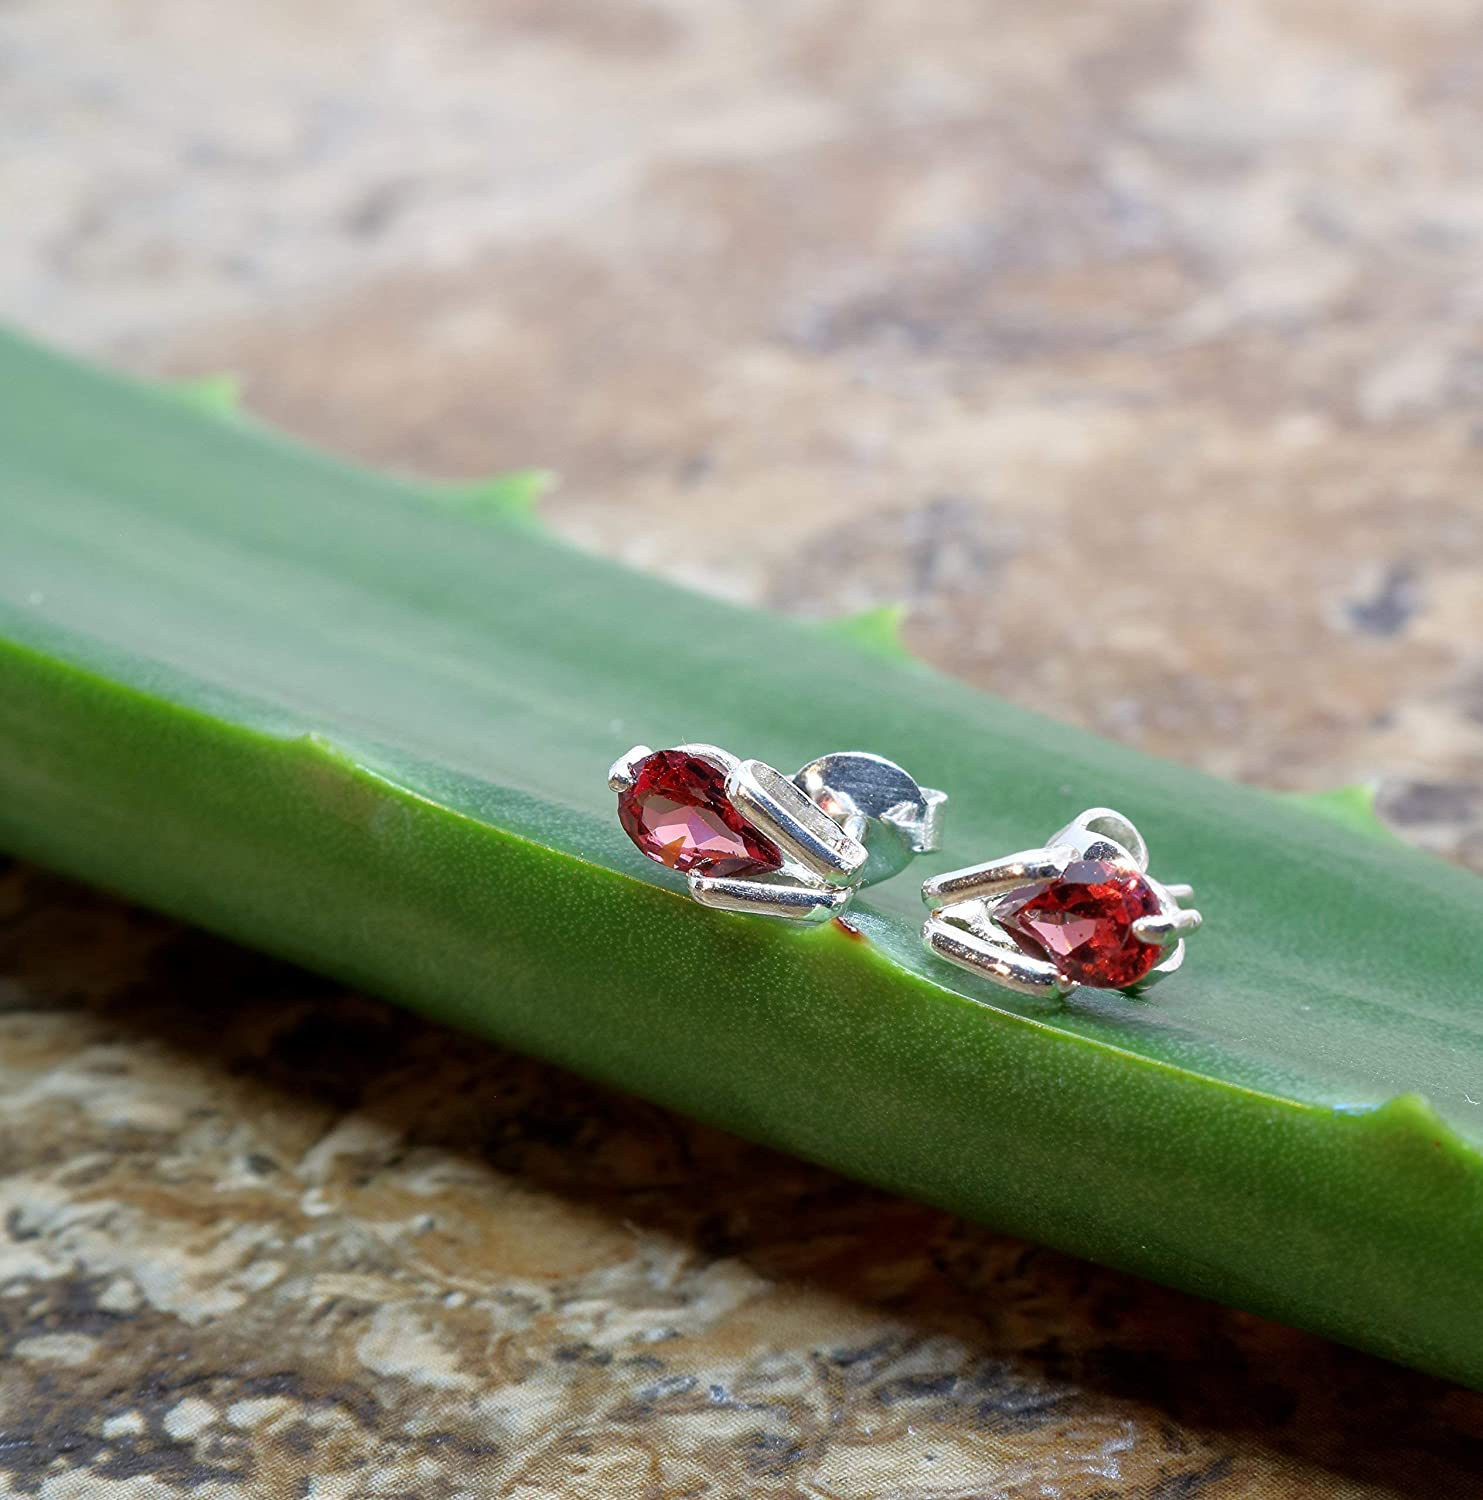 Sterling Silver Handmade Tear Drop Stud Earring with a Natural Garnet Gemstone For Wife for Girlfriend for Sister for Her